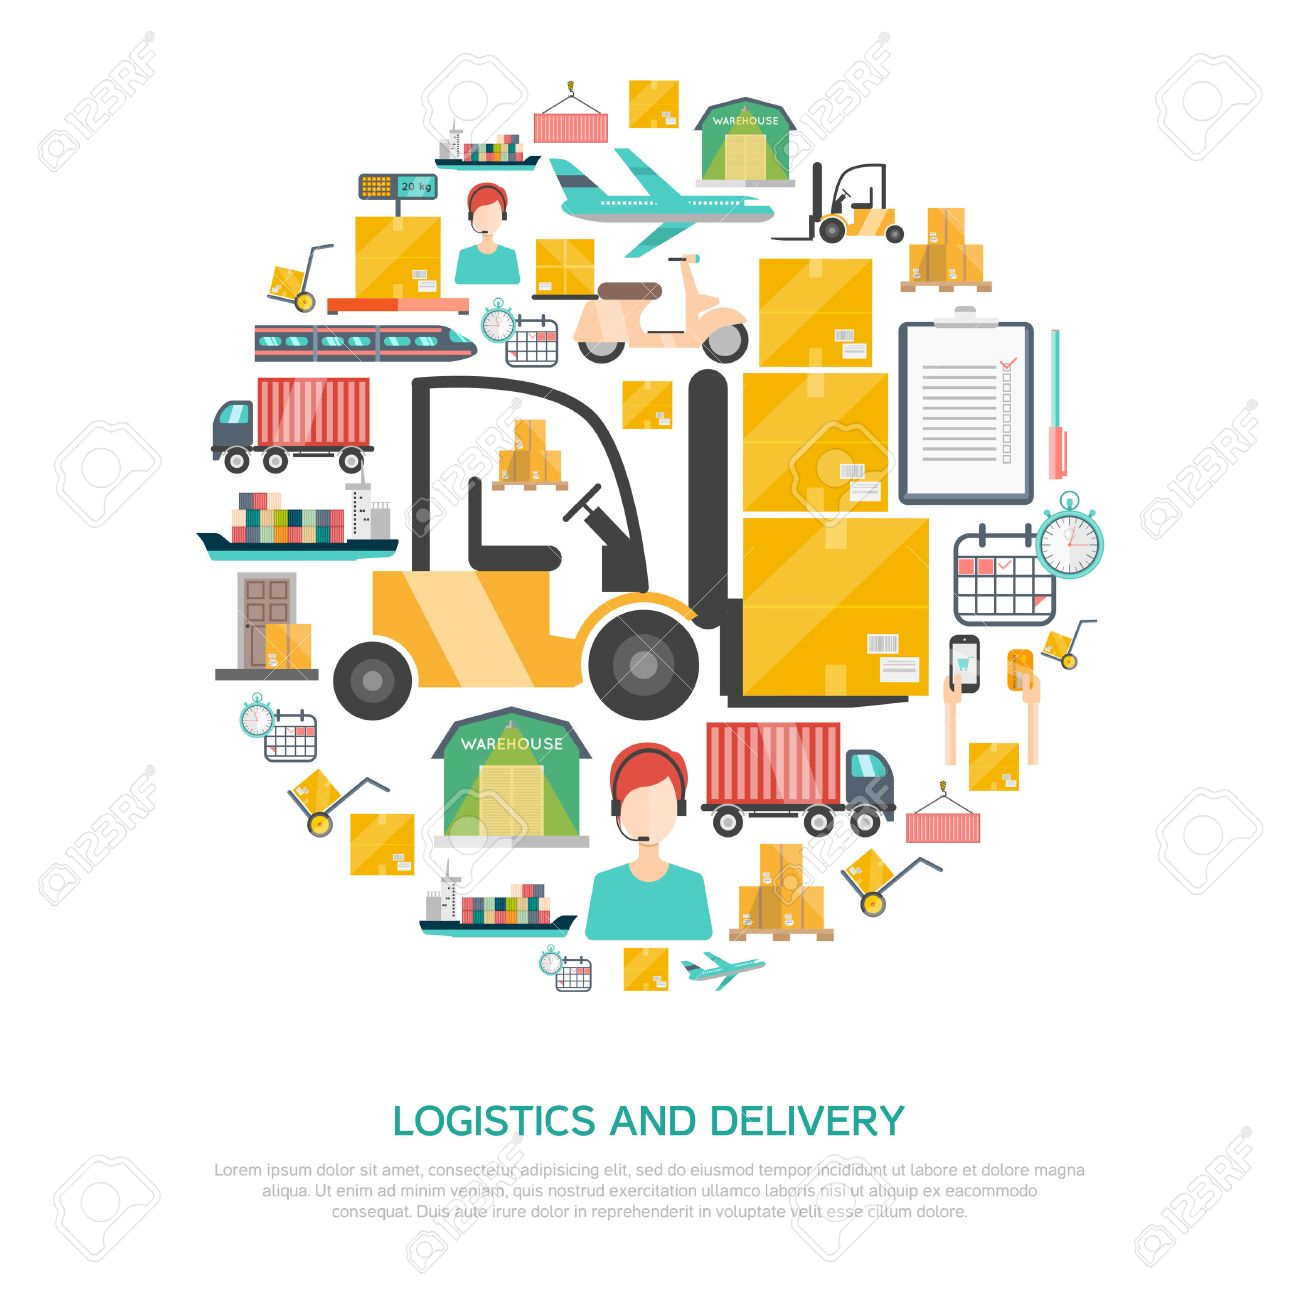 Delightful Logistics And Transportation Concept With Storage And Delivery Symbols Flat  Vector Illustration Stock Vector   45805671